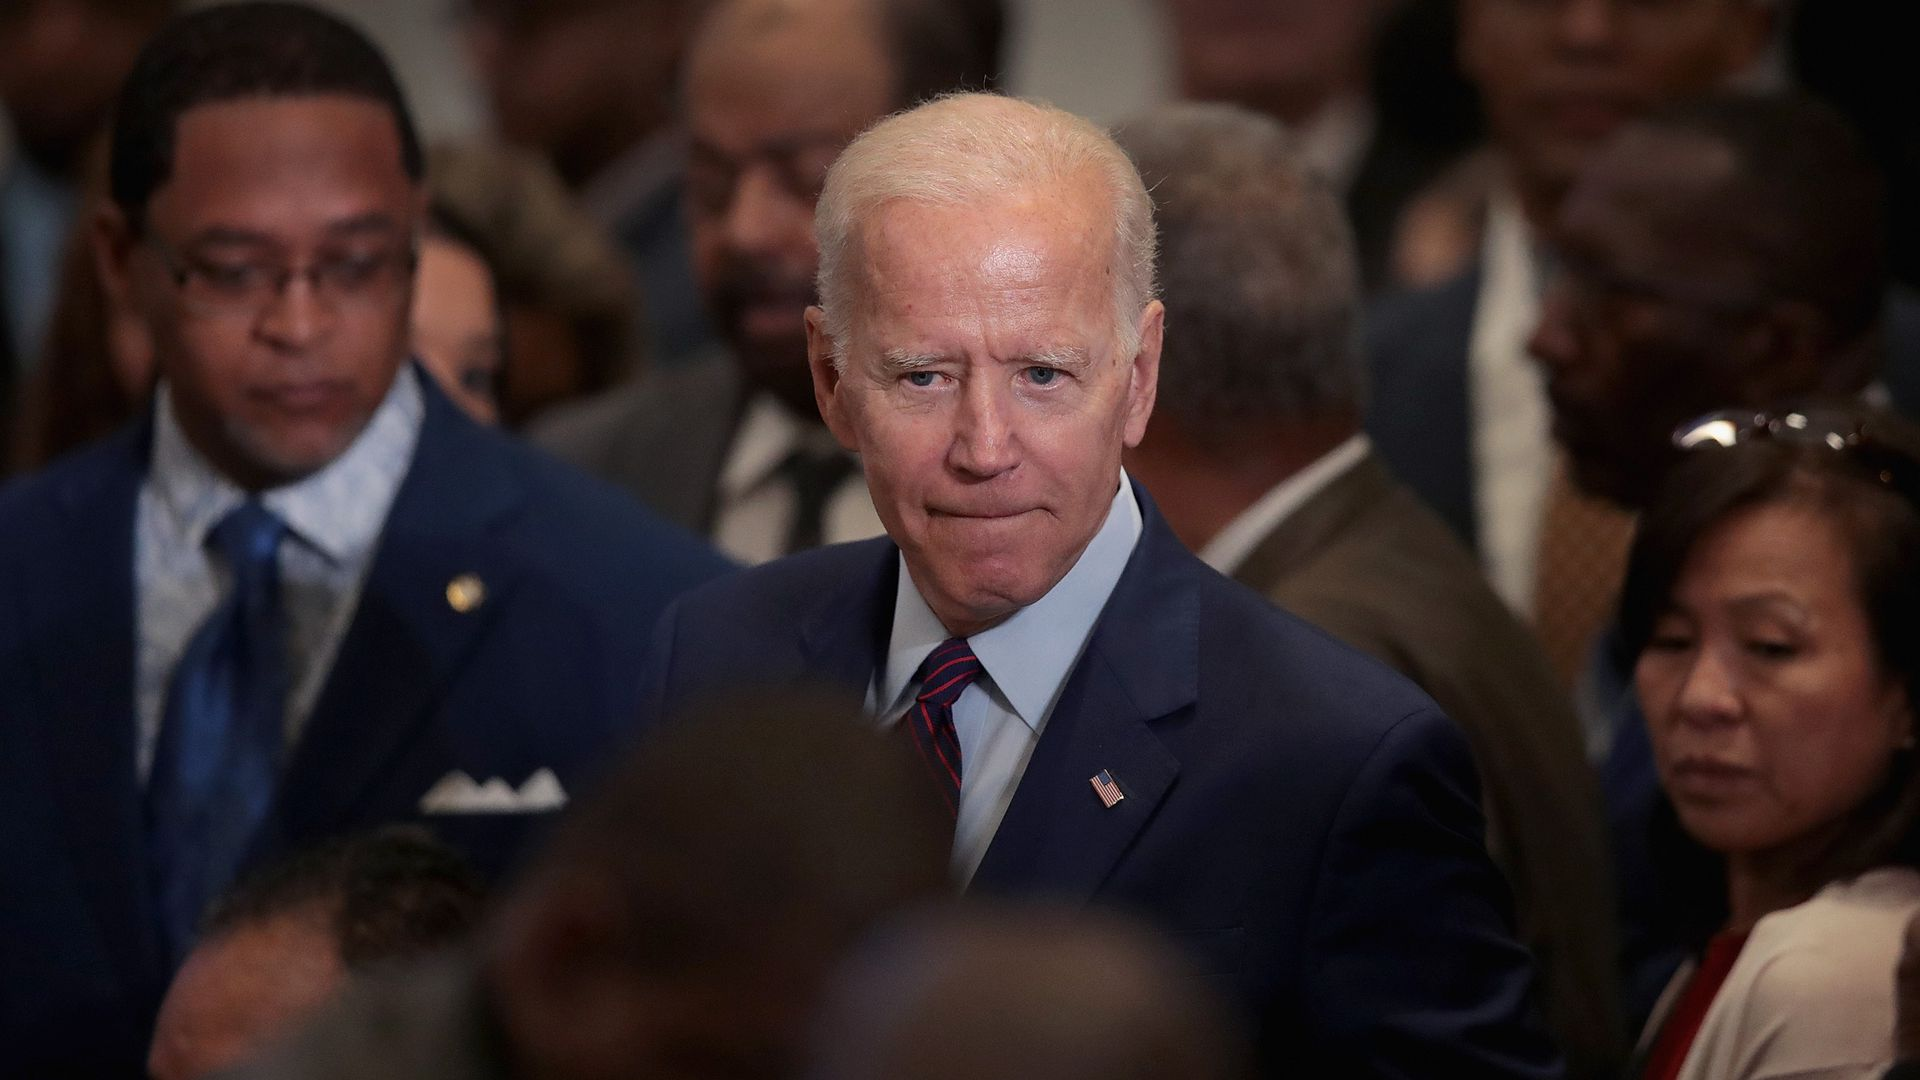 In this image, Biden stands in a crowd.